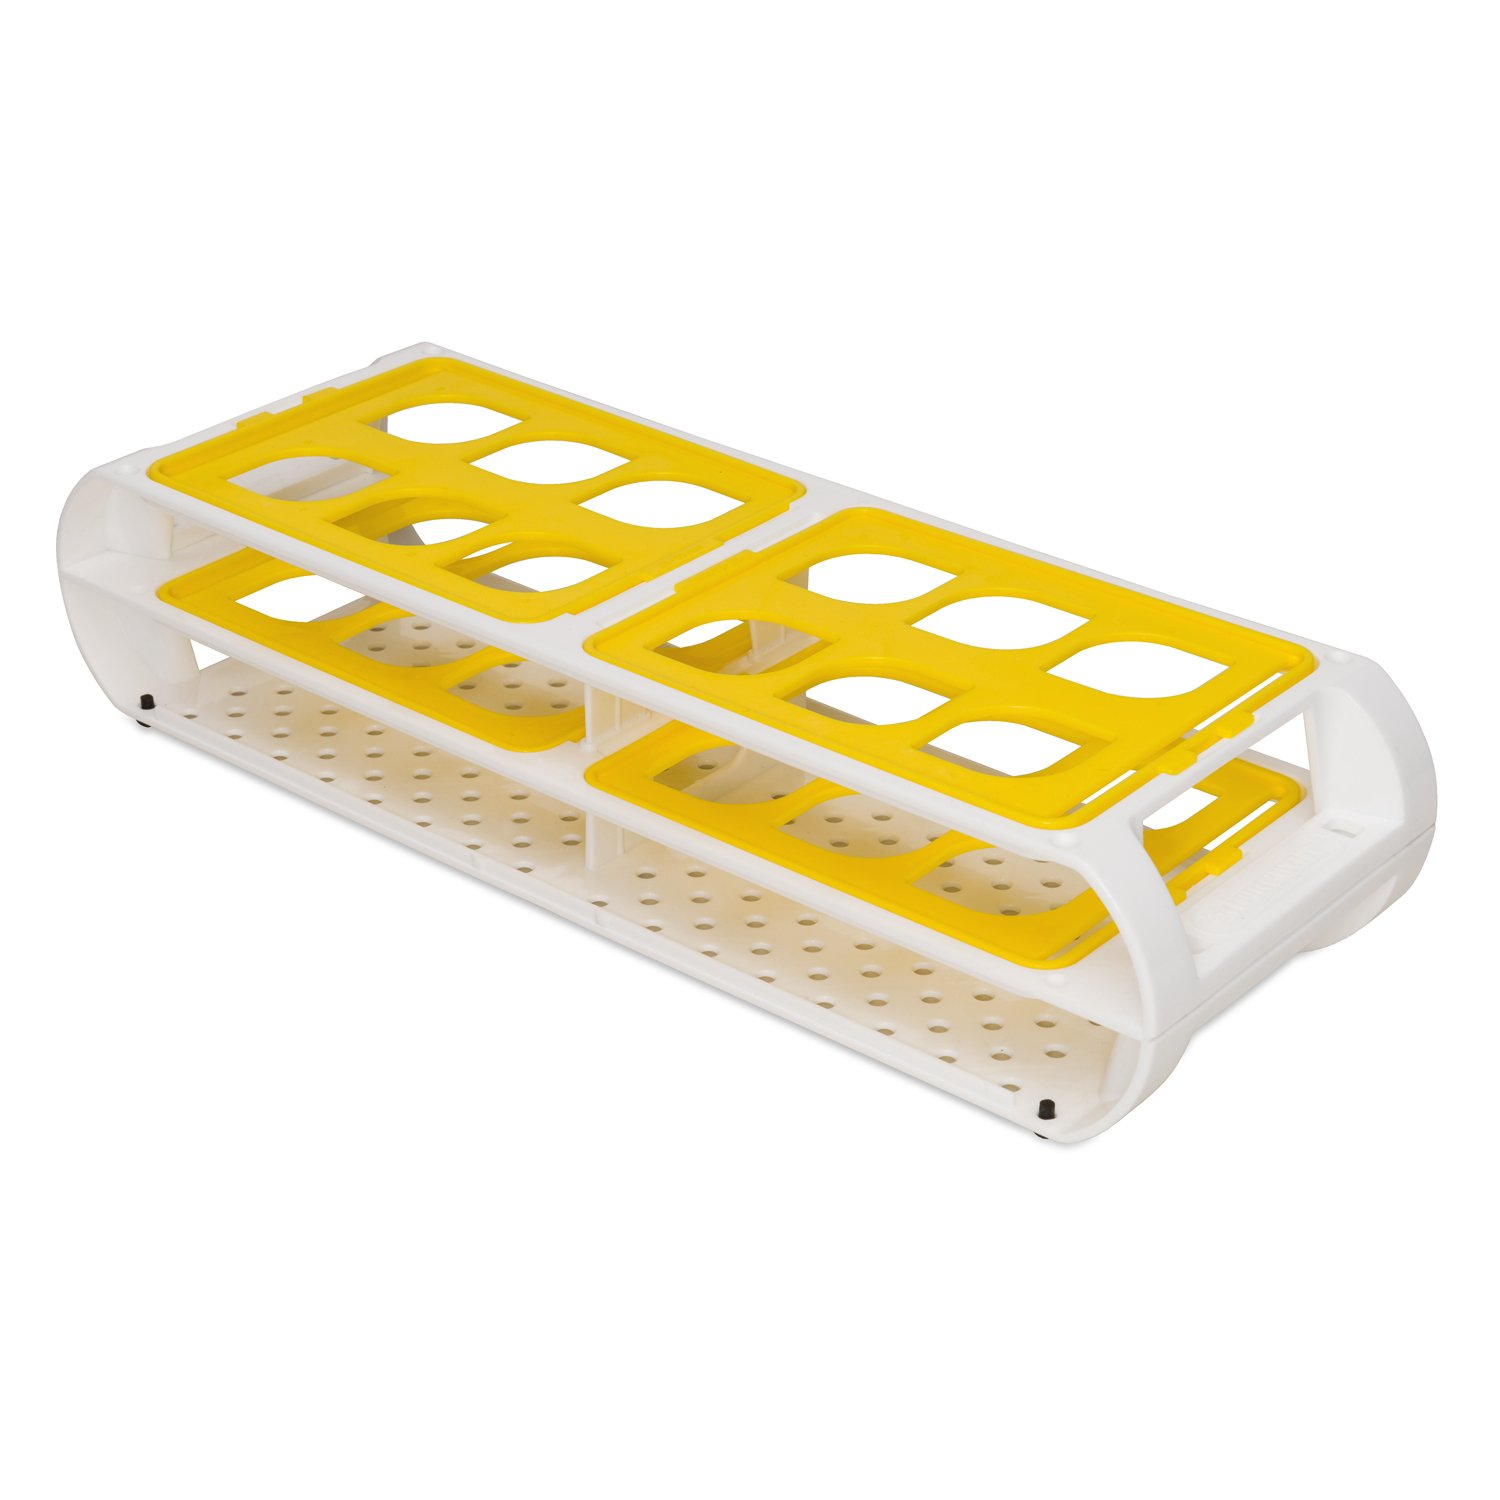 Bel-Art F18745-0014 Switch-Grid Test Tube Rack; 12 Places, 25-30mm, 12½ x 4⅜ x 2⅝ in., Yellow